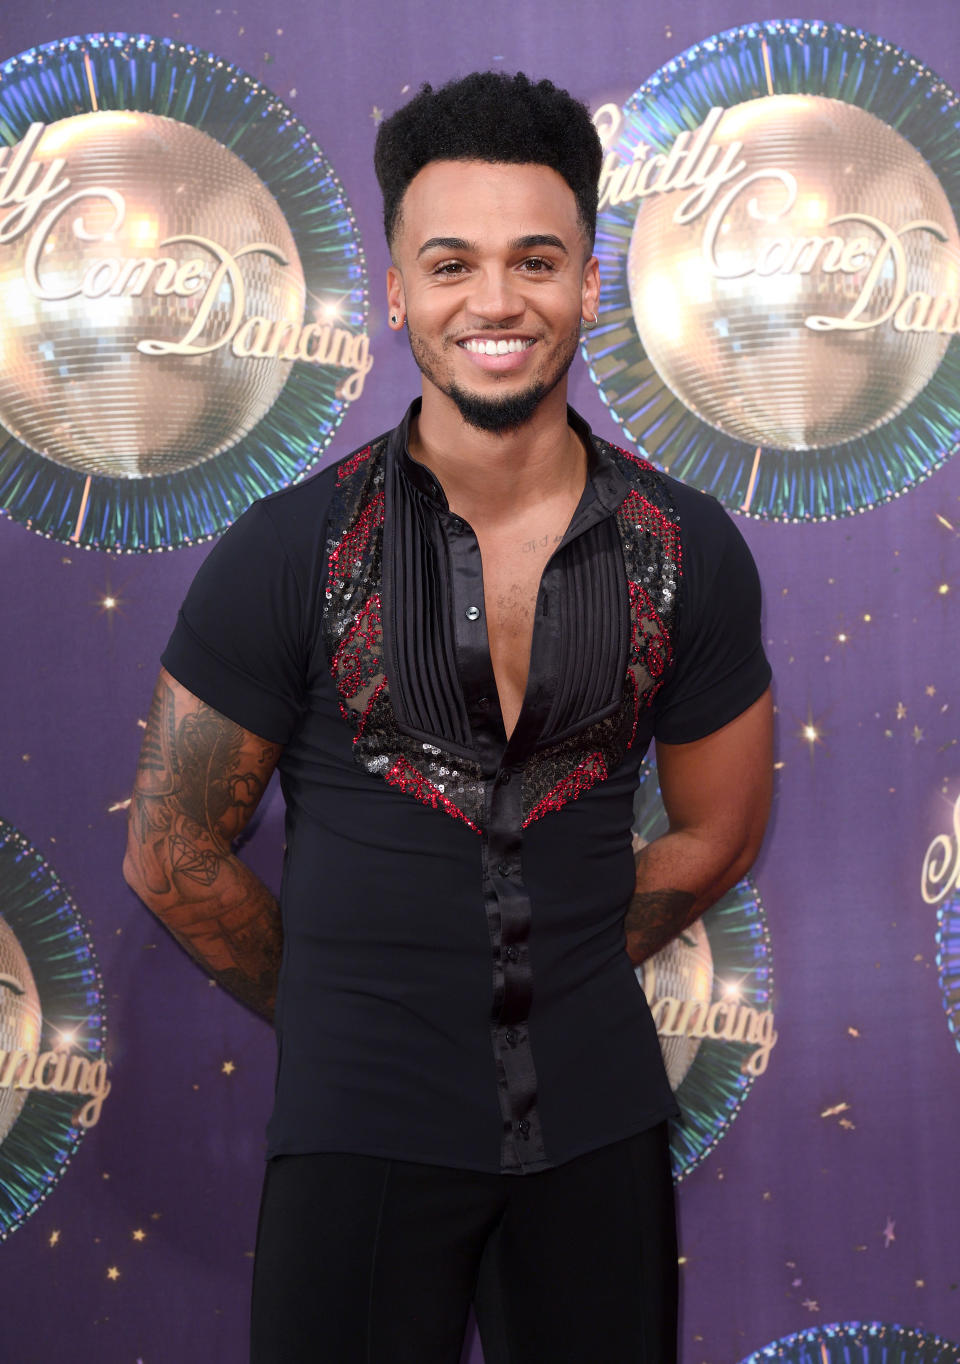 LONDON, ENGLAND - AUGUST 28:  Aston Merrygold attends the 'Strictly Come Dancing 2017' red carpet launch at Broadcasting House on August 28, 2017 in London, England.  (Photo by Karwai Tang/WireImage)